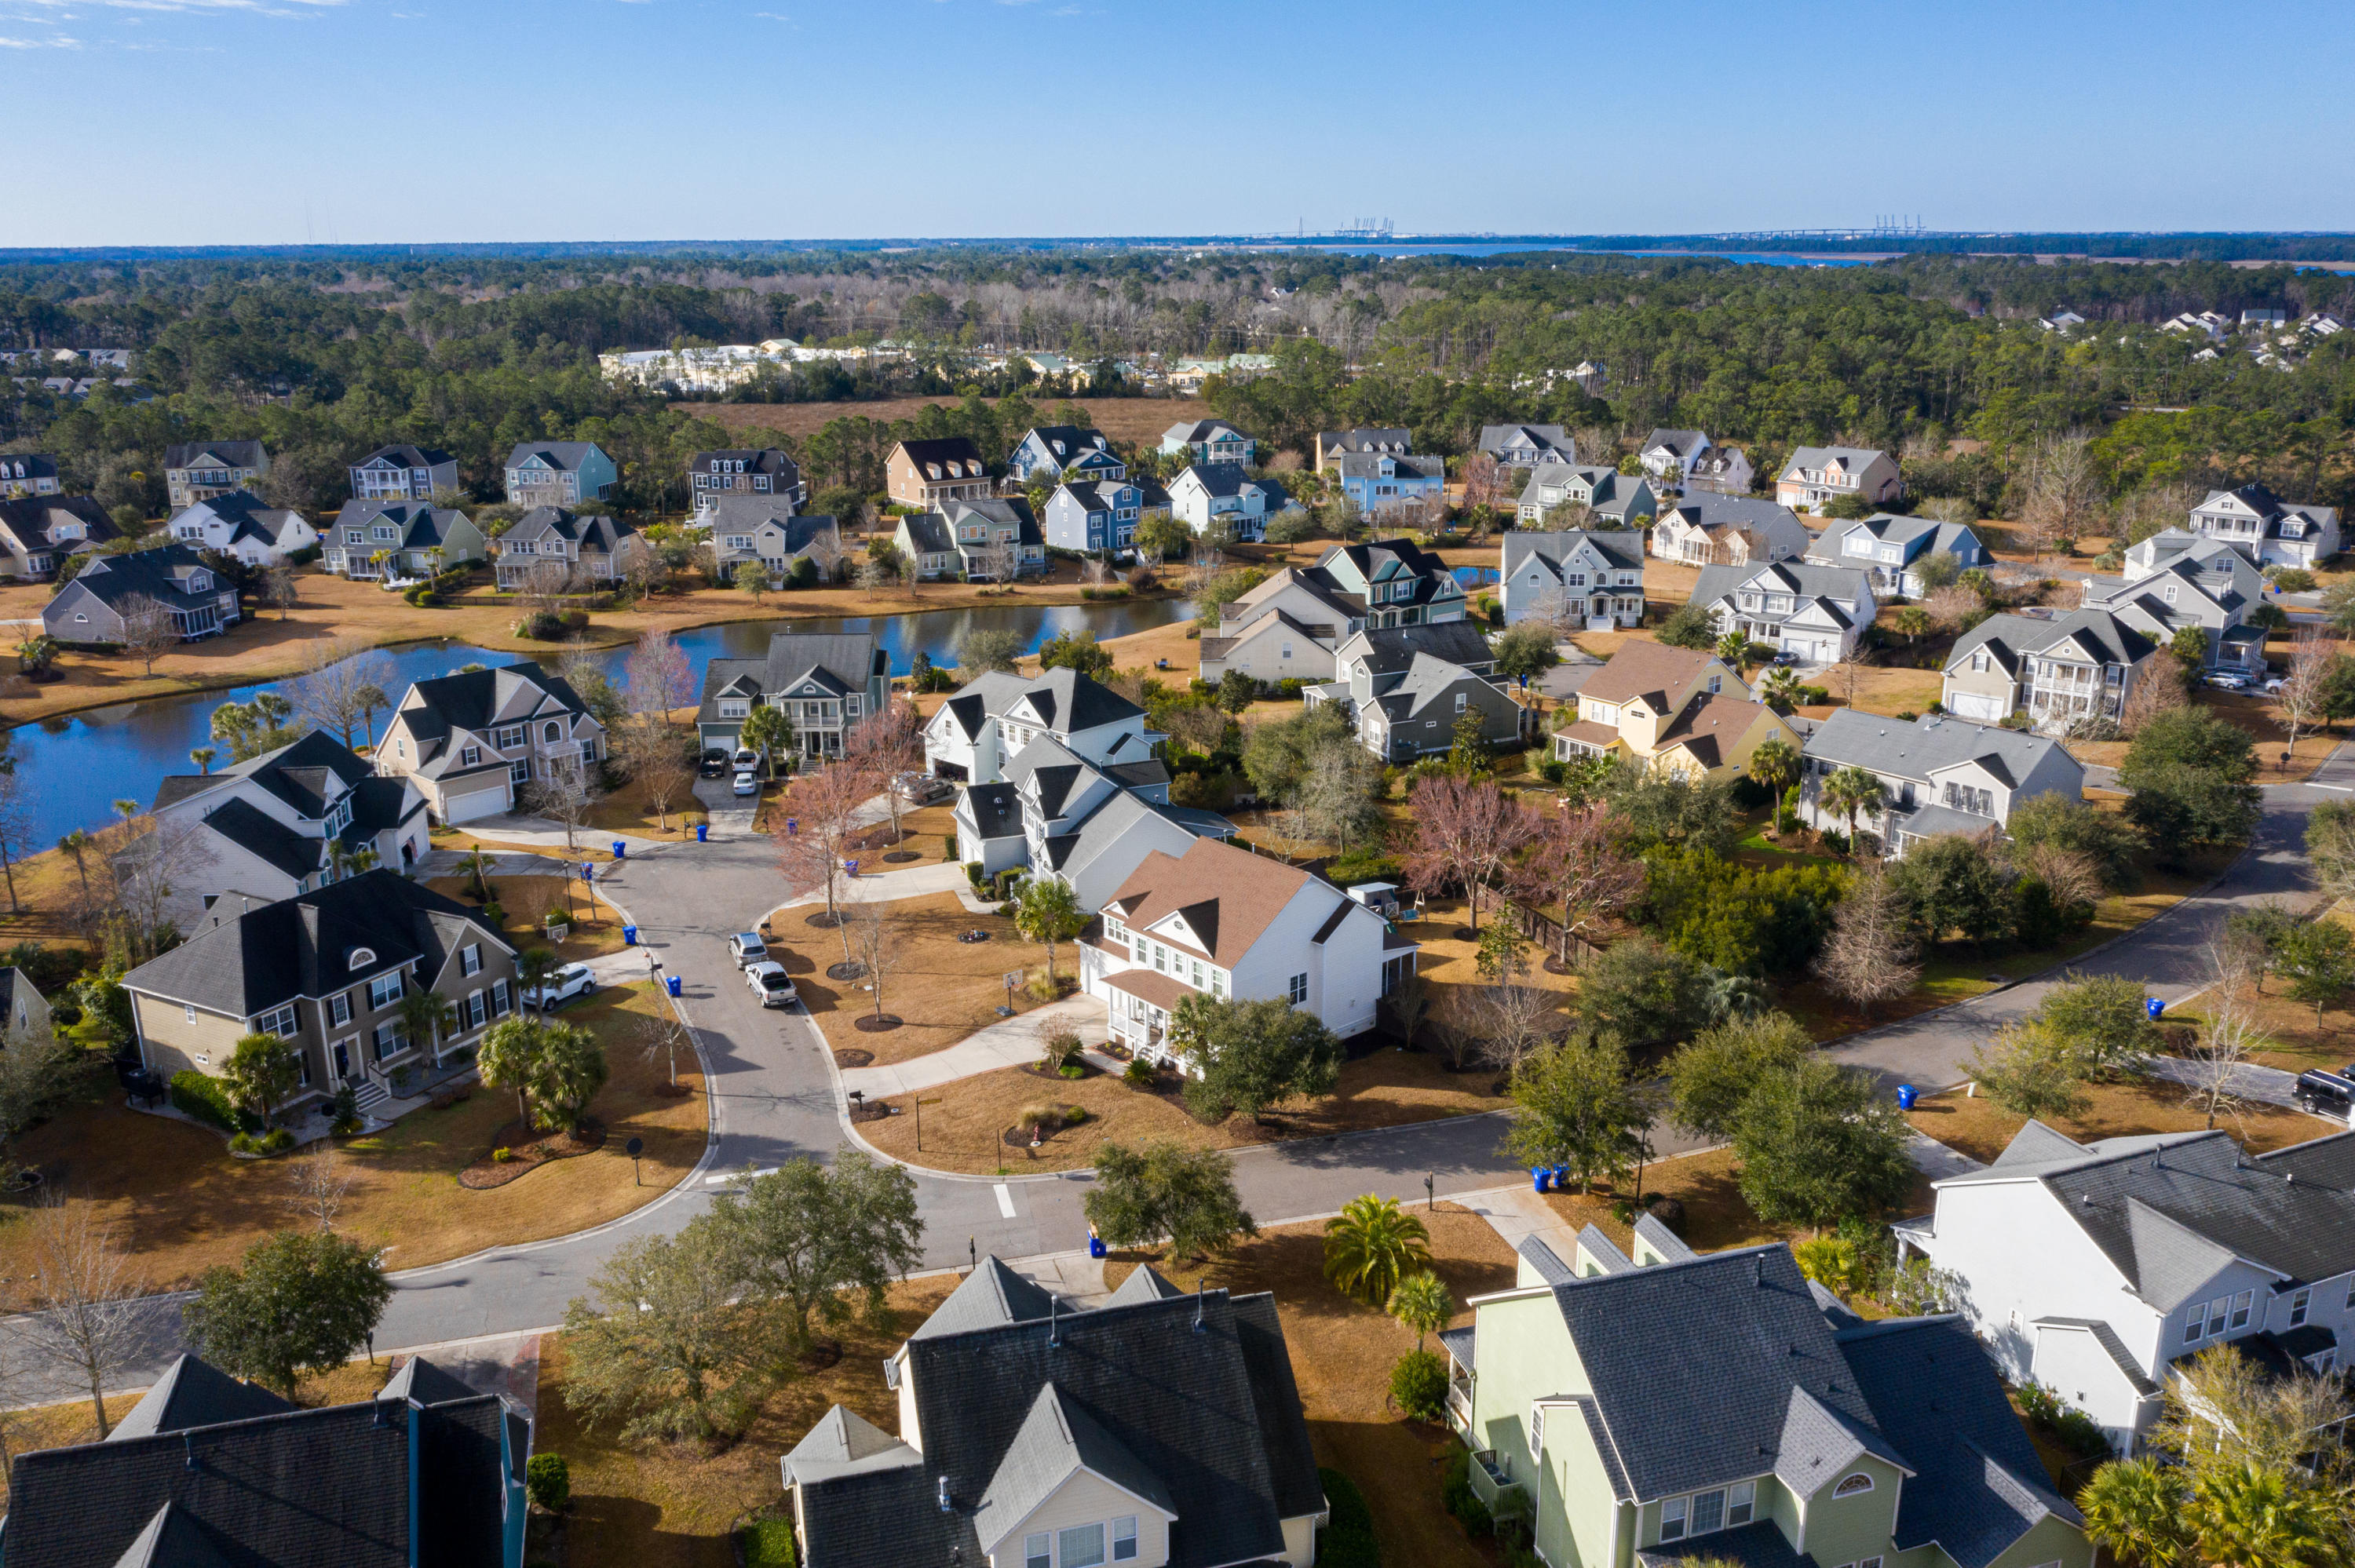 Dunes West Homes For Sale - 1600 Willowick, Mount Pleasant, SC - 0